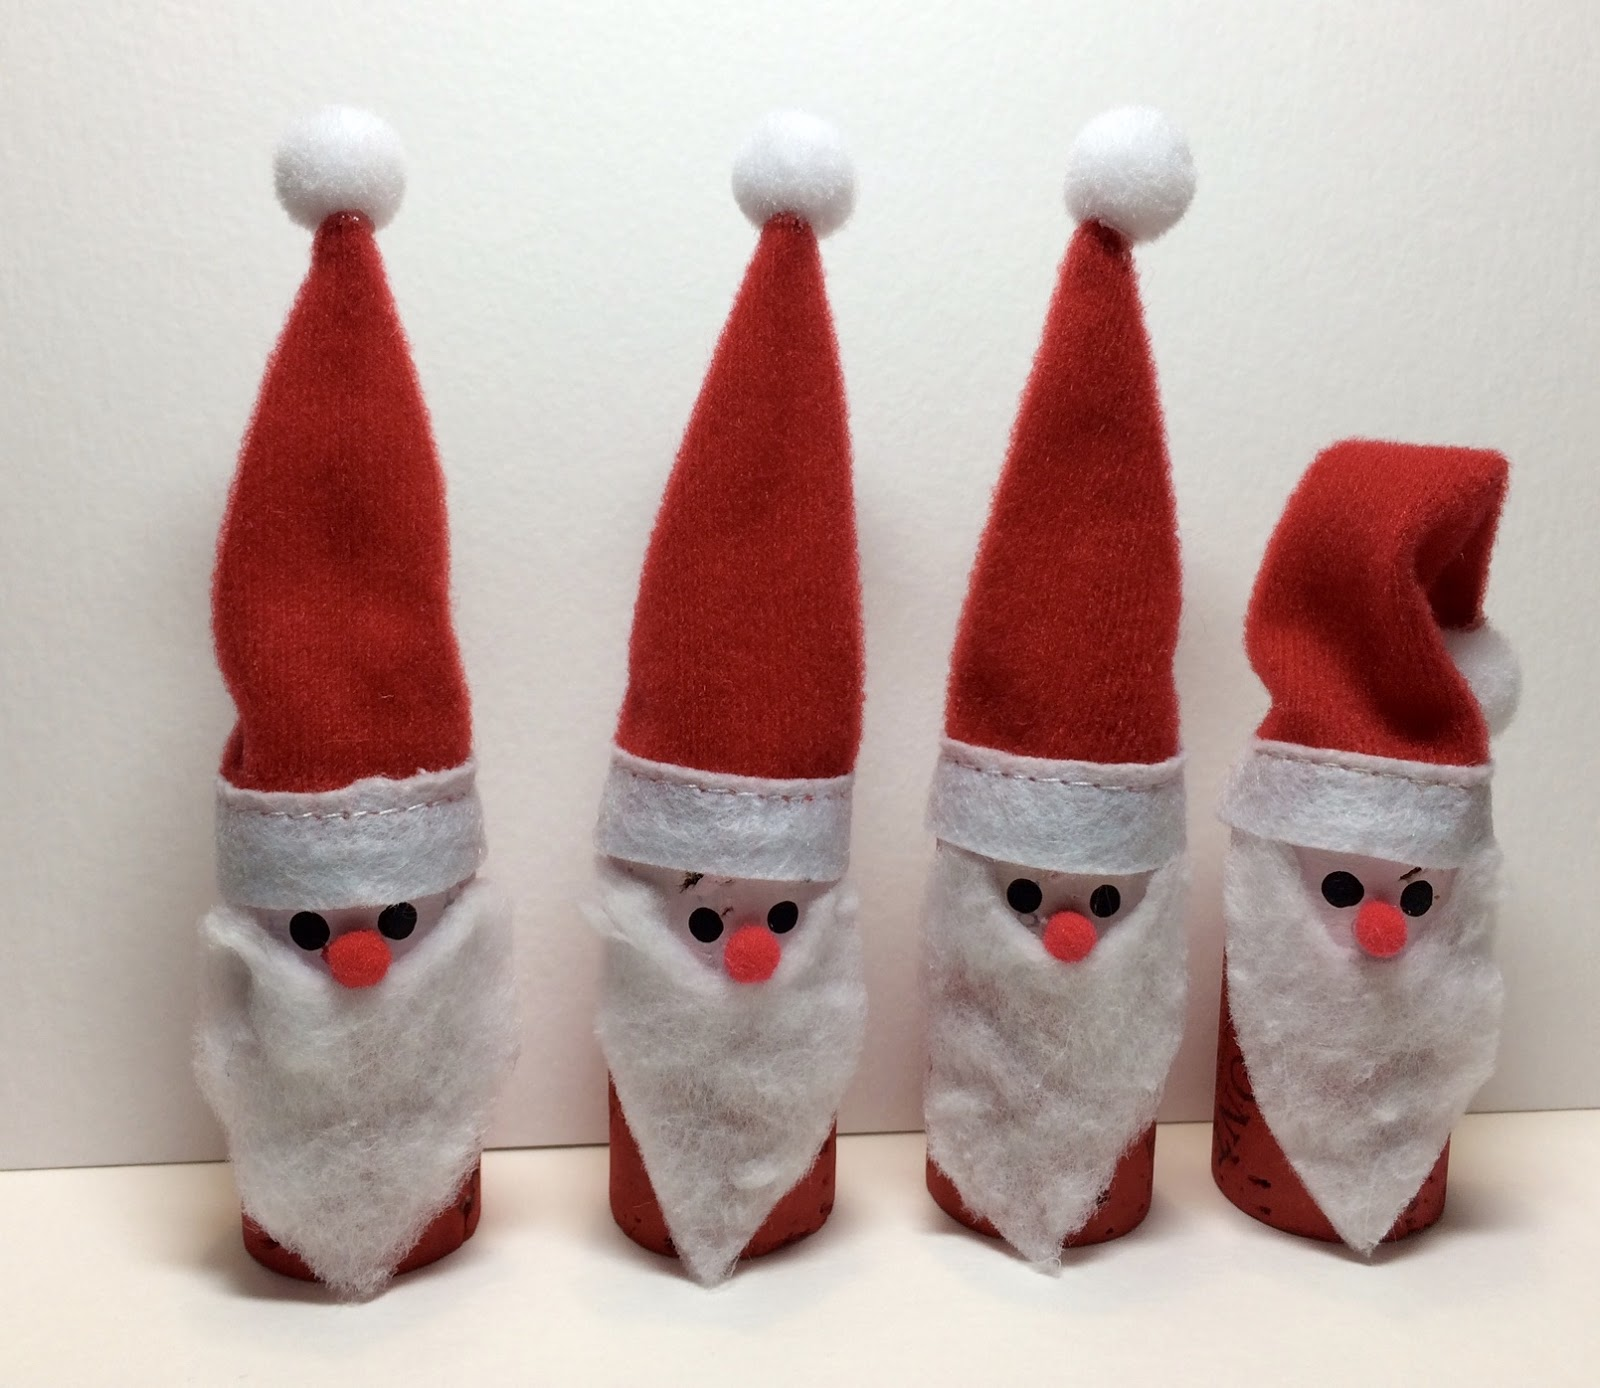 Santa Hat Chair Back Covers Hobby Lobby Bedroom With Storage Kathy 39s Angelnik Designs And Art Project Ideas Wine Cork